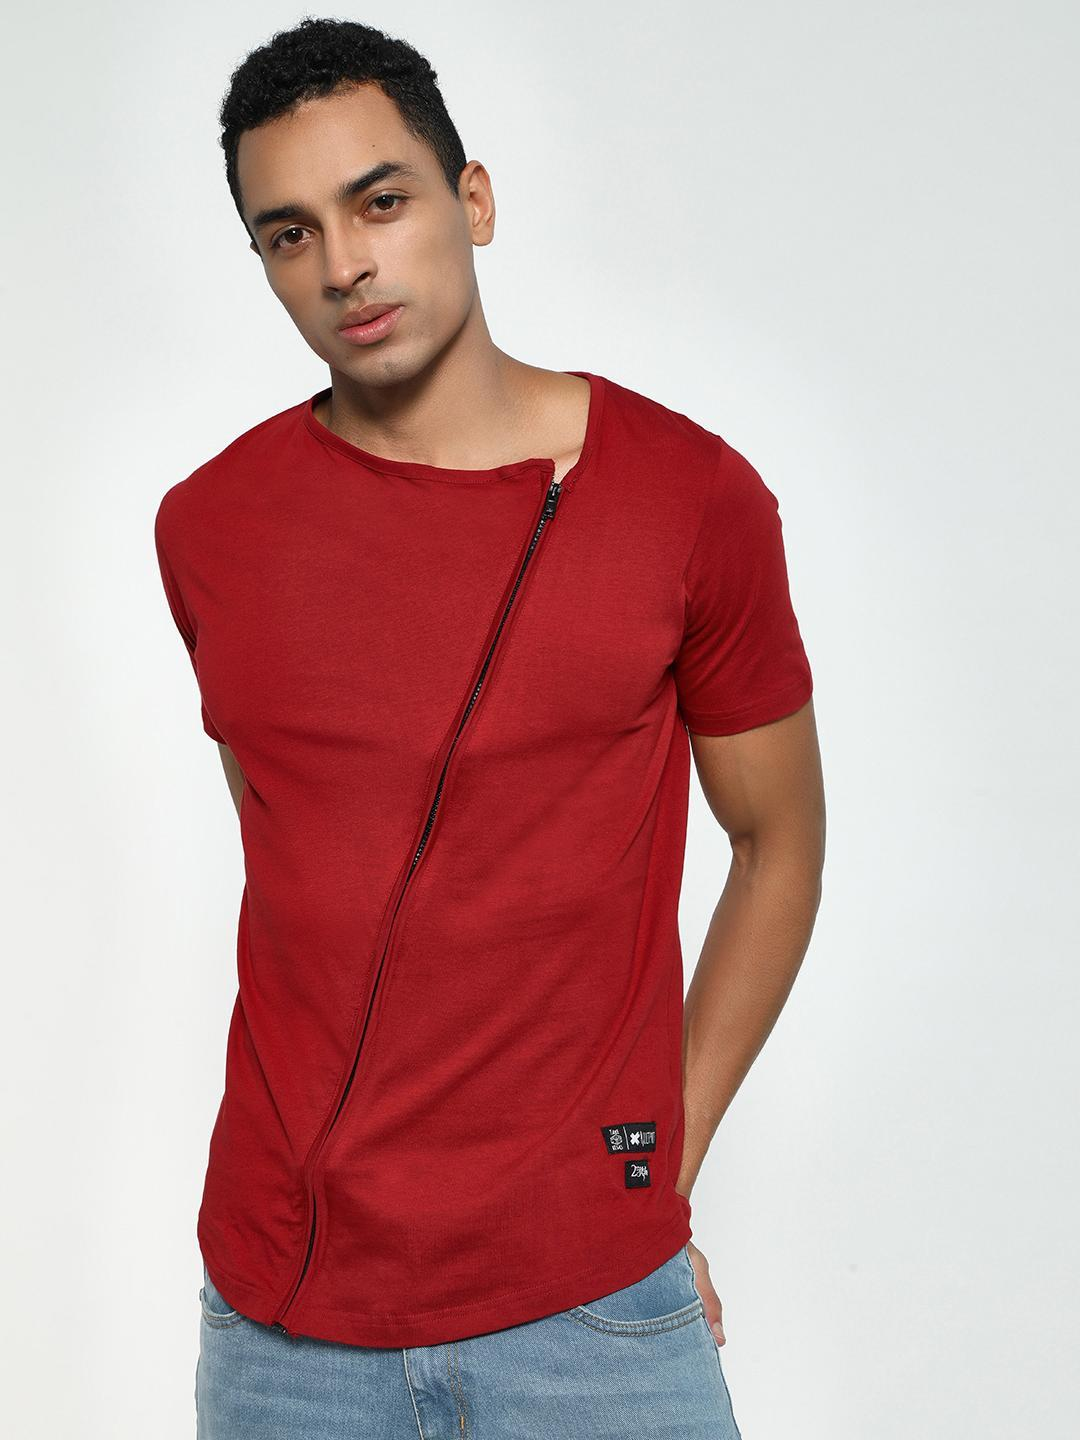 Kultprit Red Asymmetric Zipper Front T-Shirt 1